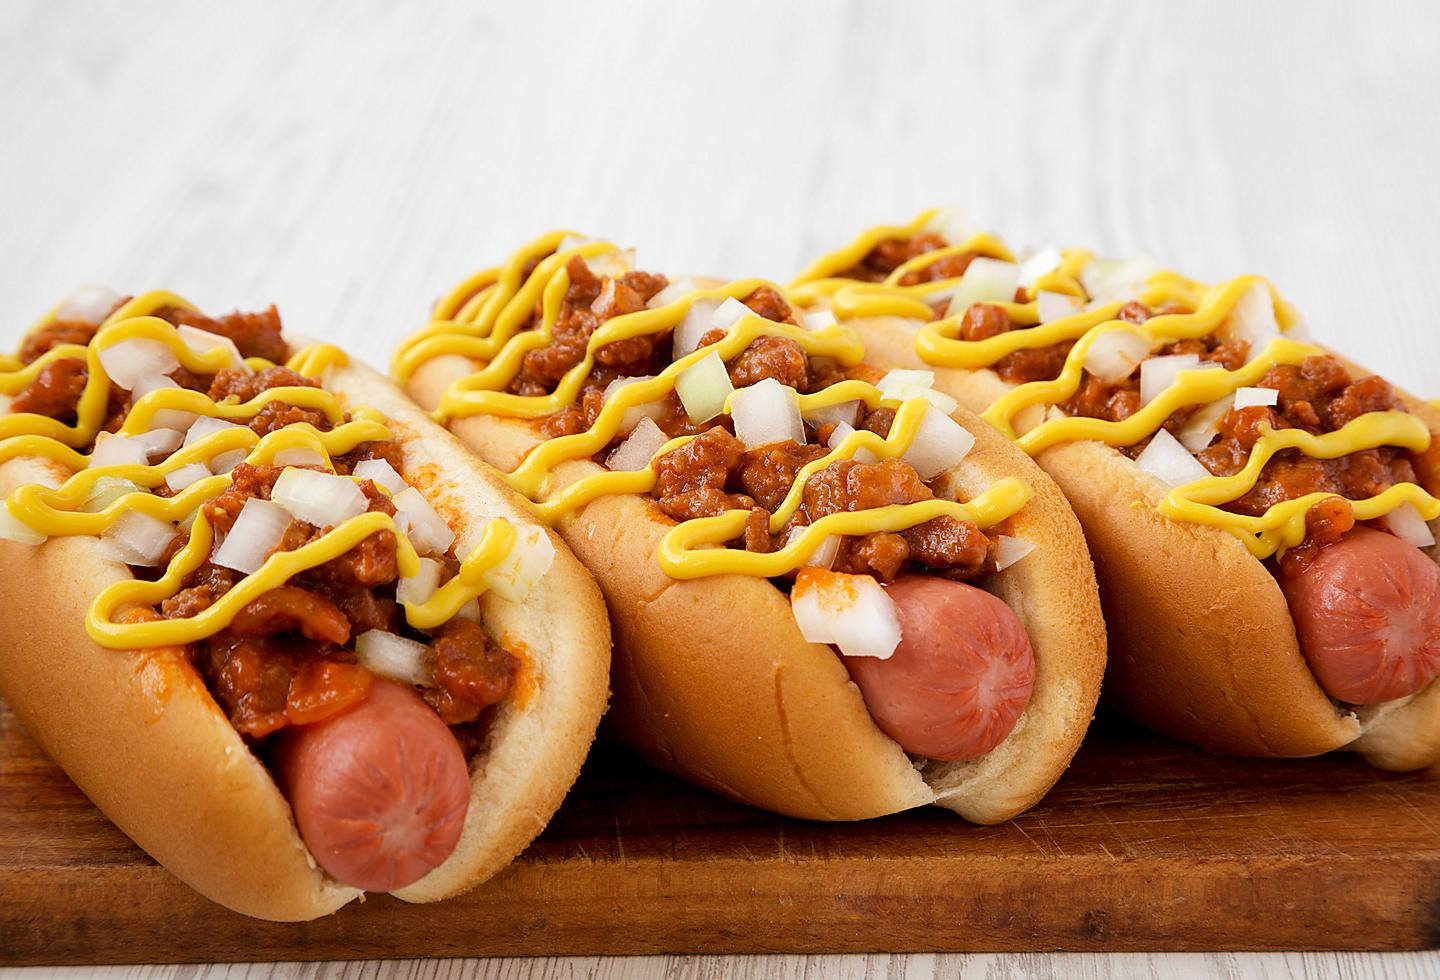 Hotdogs from Dog House